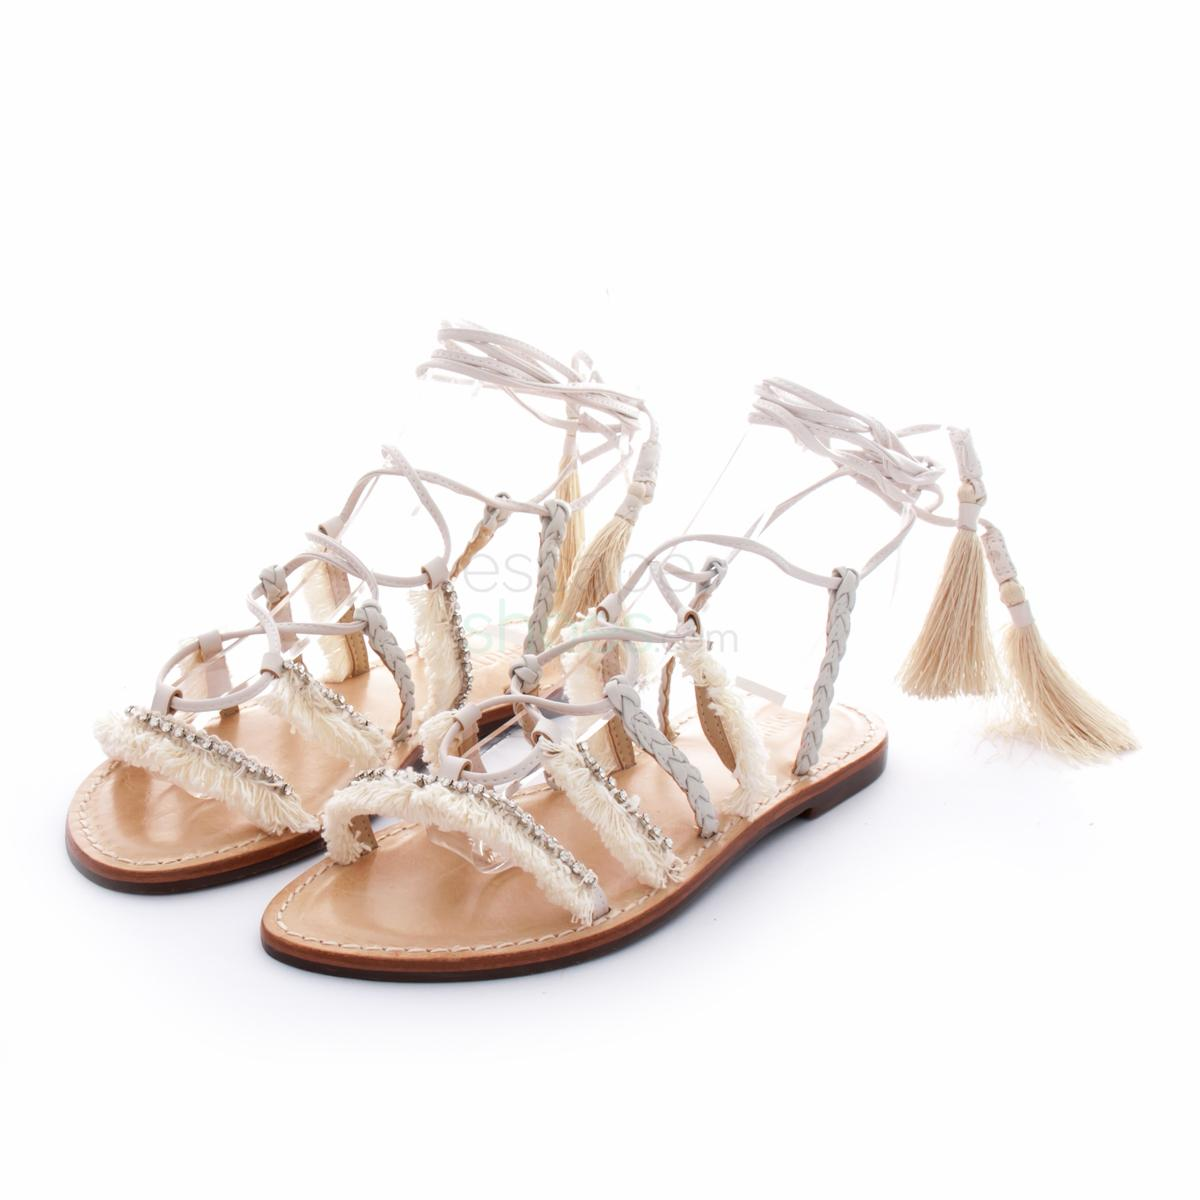 47098755f Buy your Sandals SCHUTZ Jolina Soft Nuance Braid Pearl S0-42370151 ...